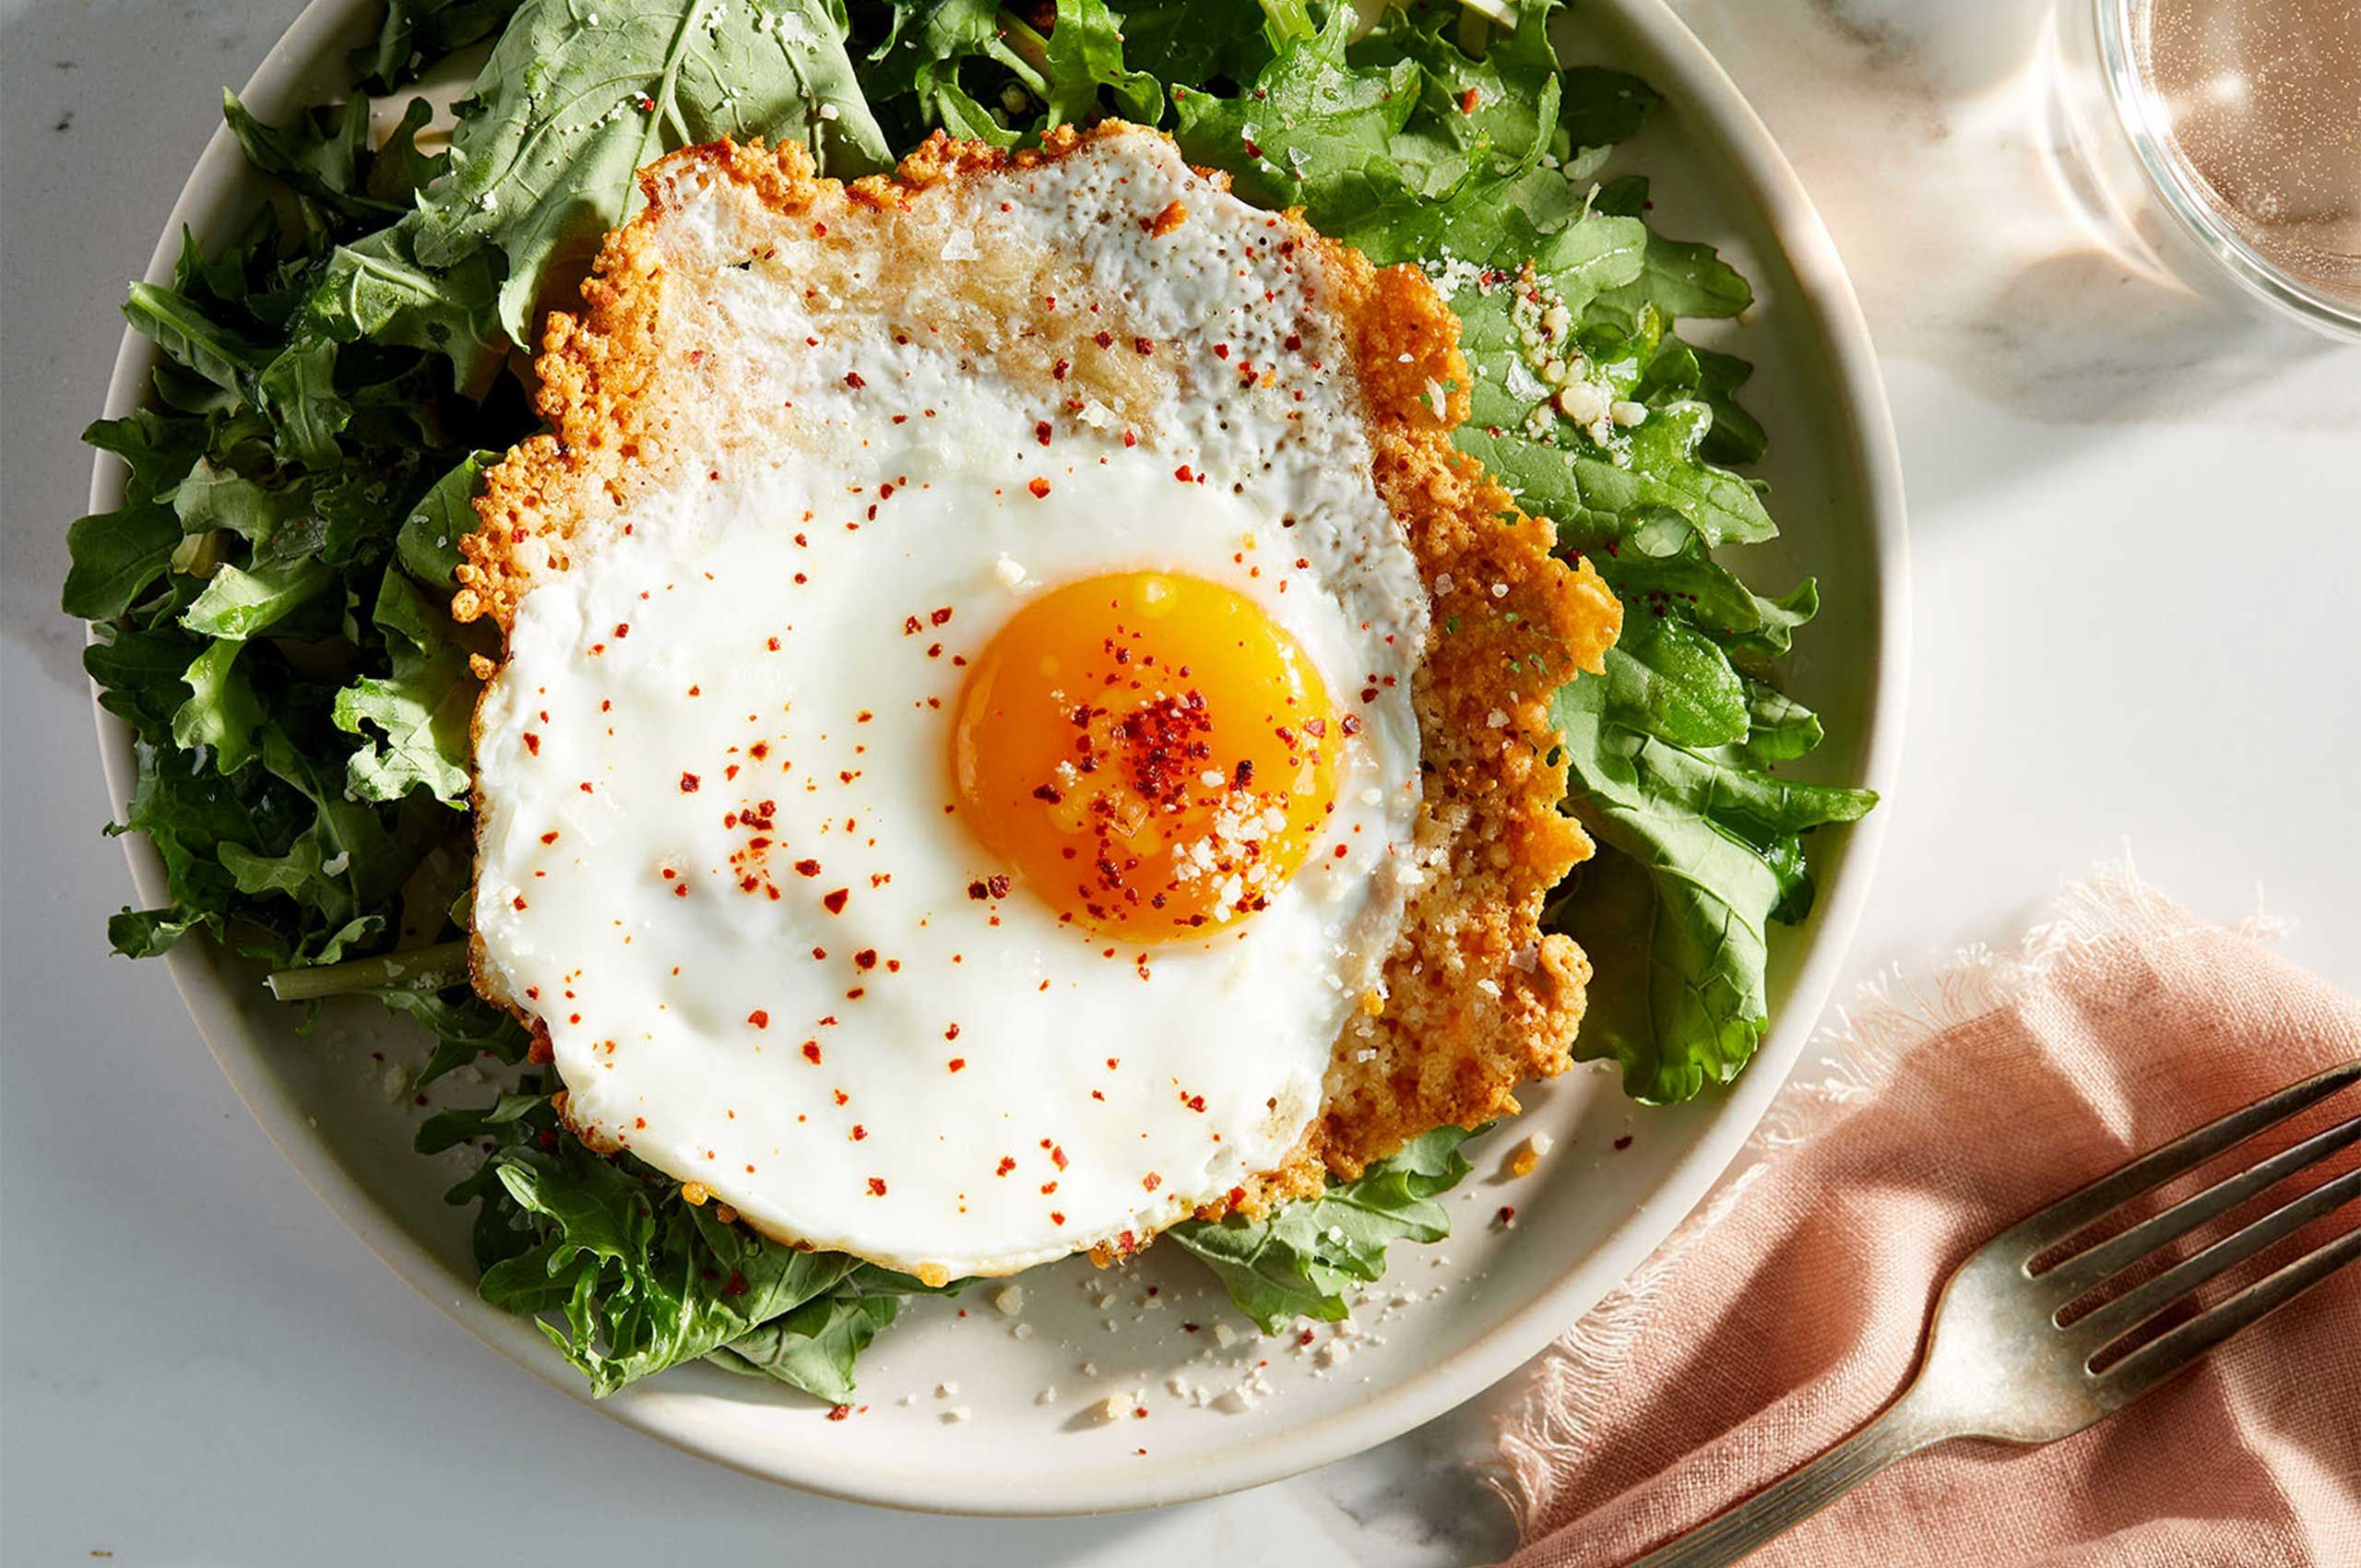 Salad with a Parmesan Fried Egg